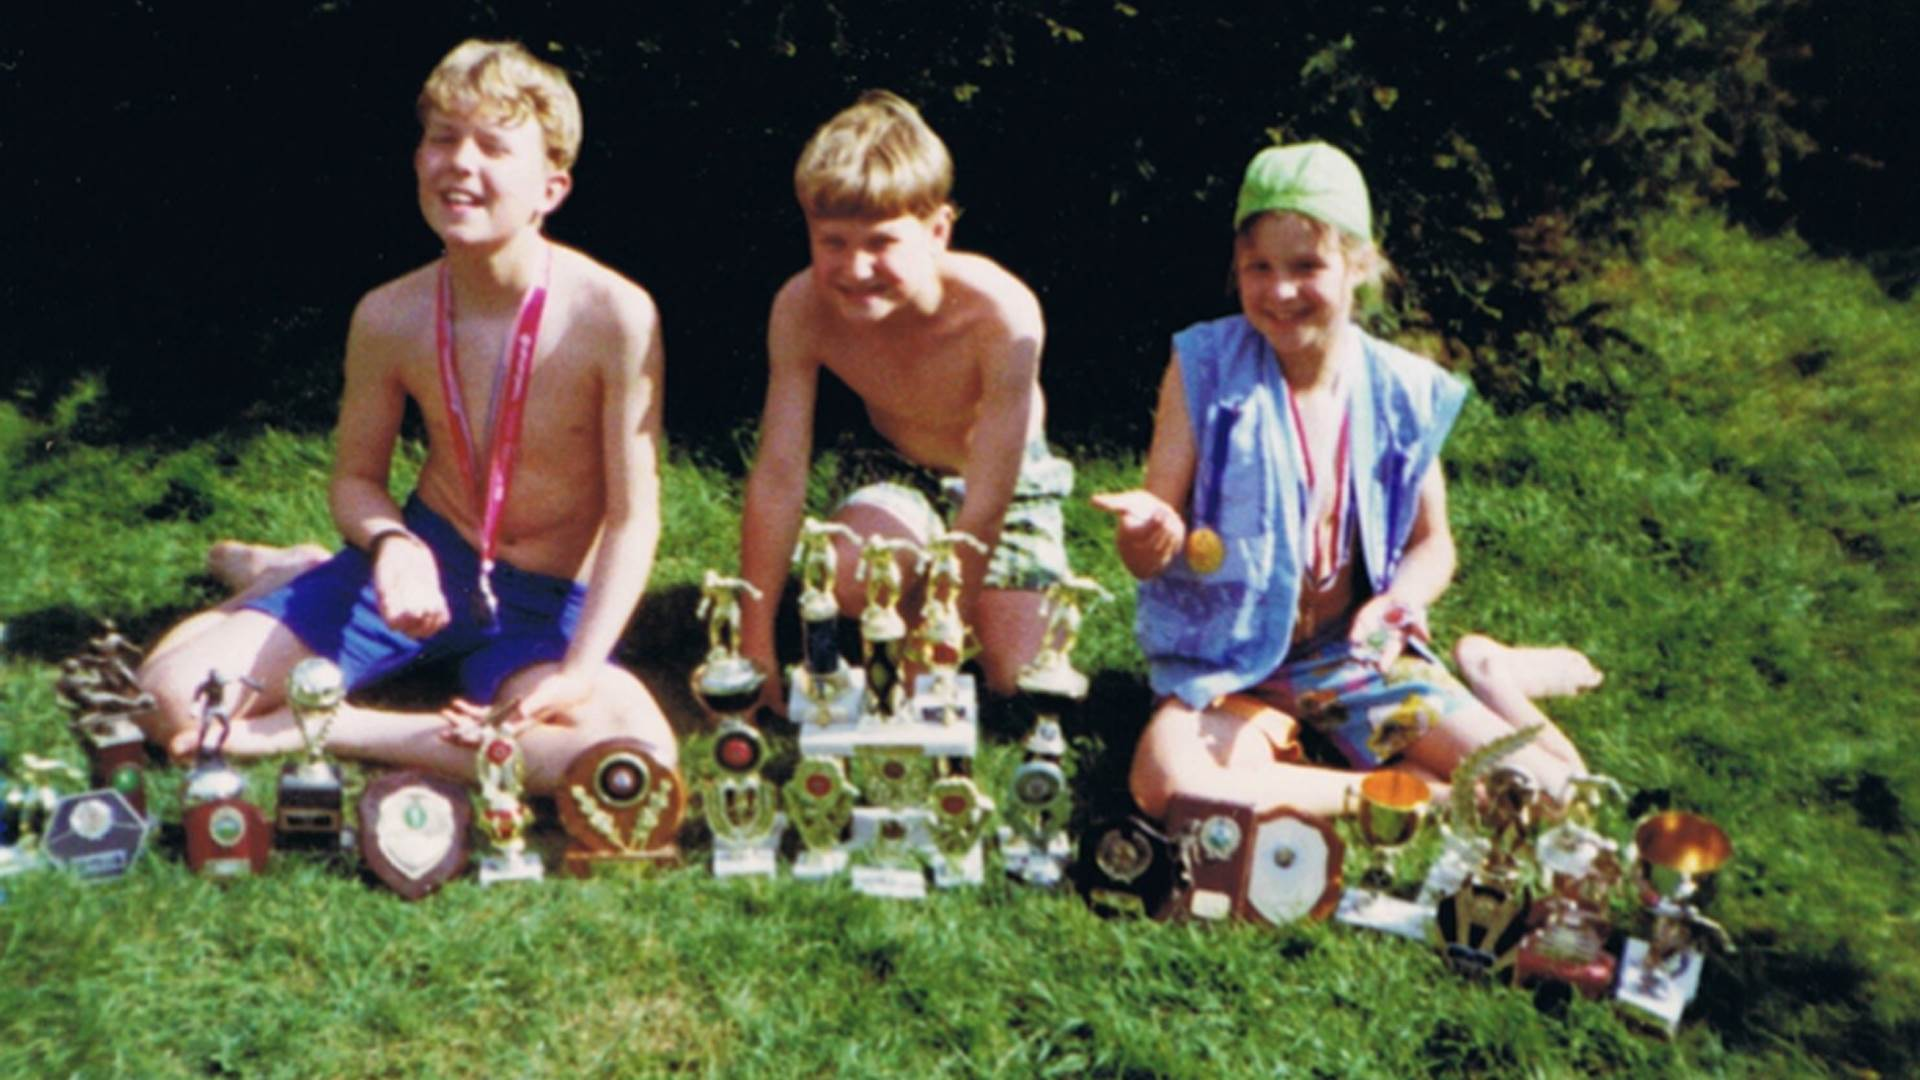 Anna McNuff and her brothers showing off their football trophies as children